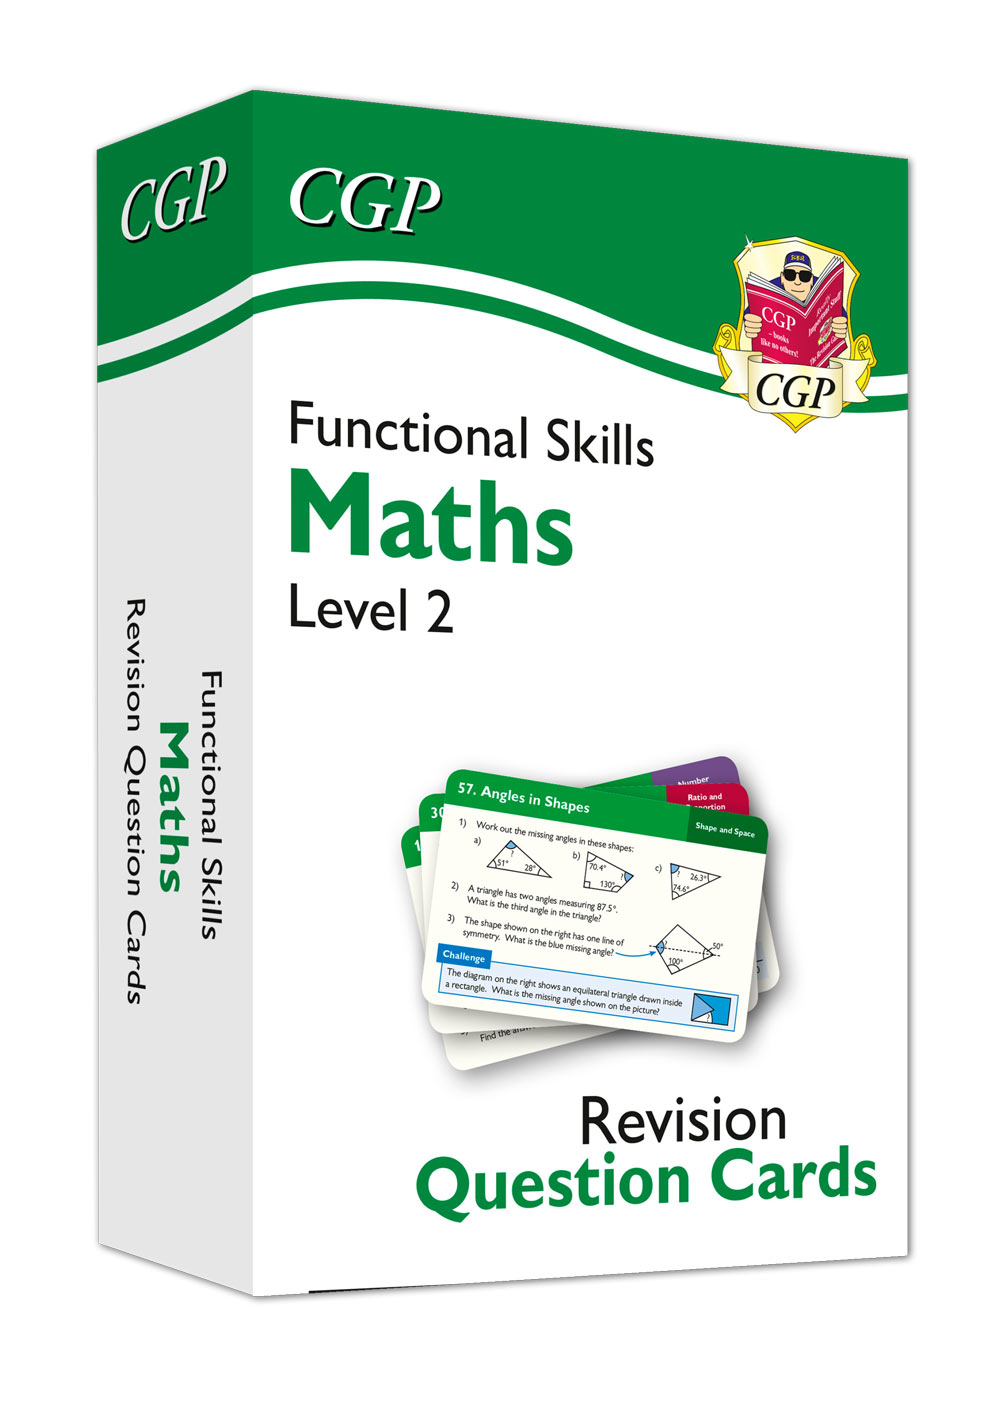 M2NFA1 - New Functional Skills Maths Revision Question Cards - Level 2